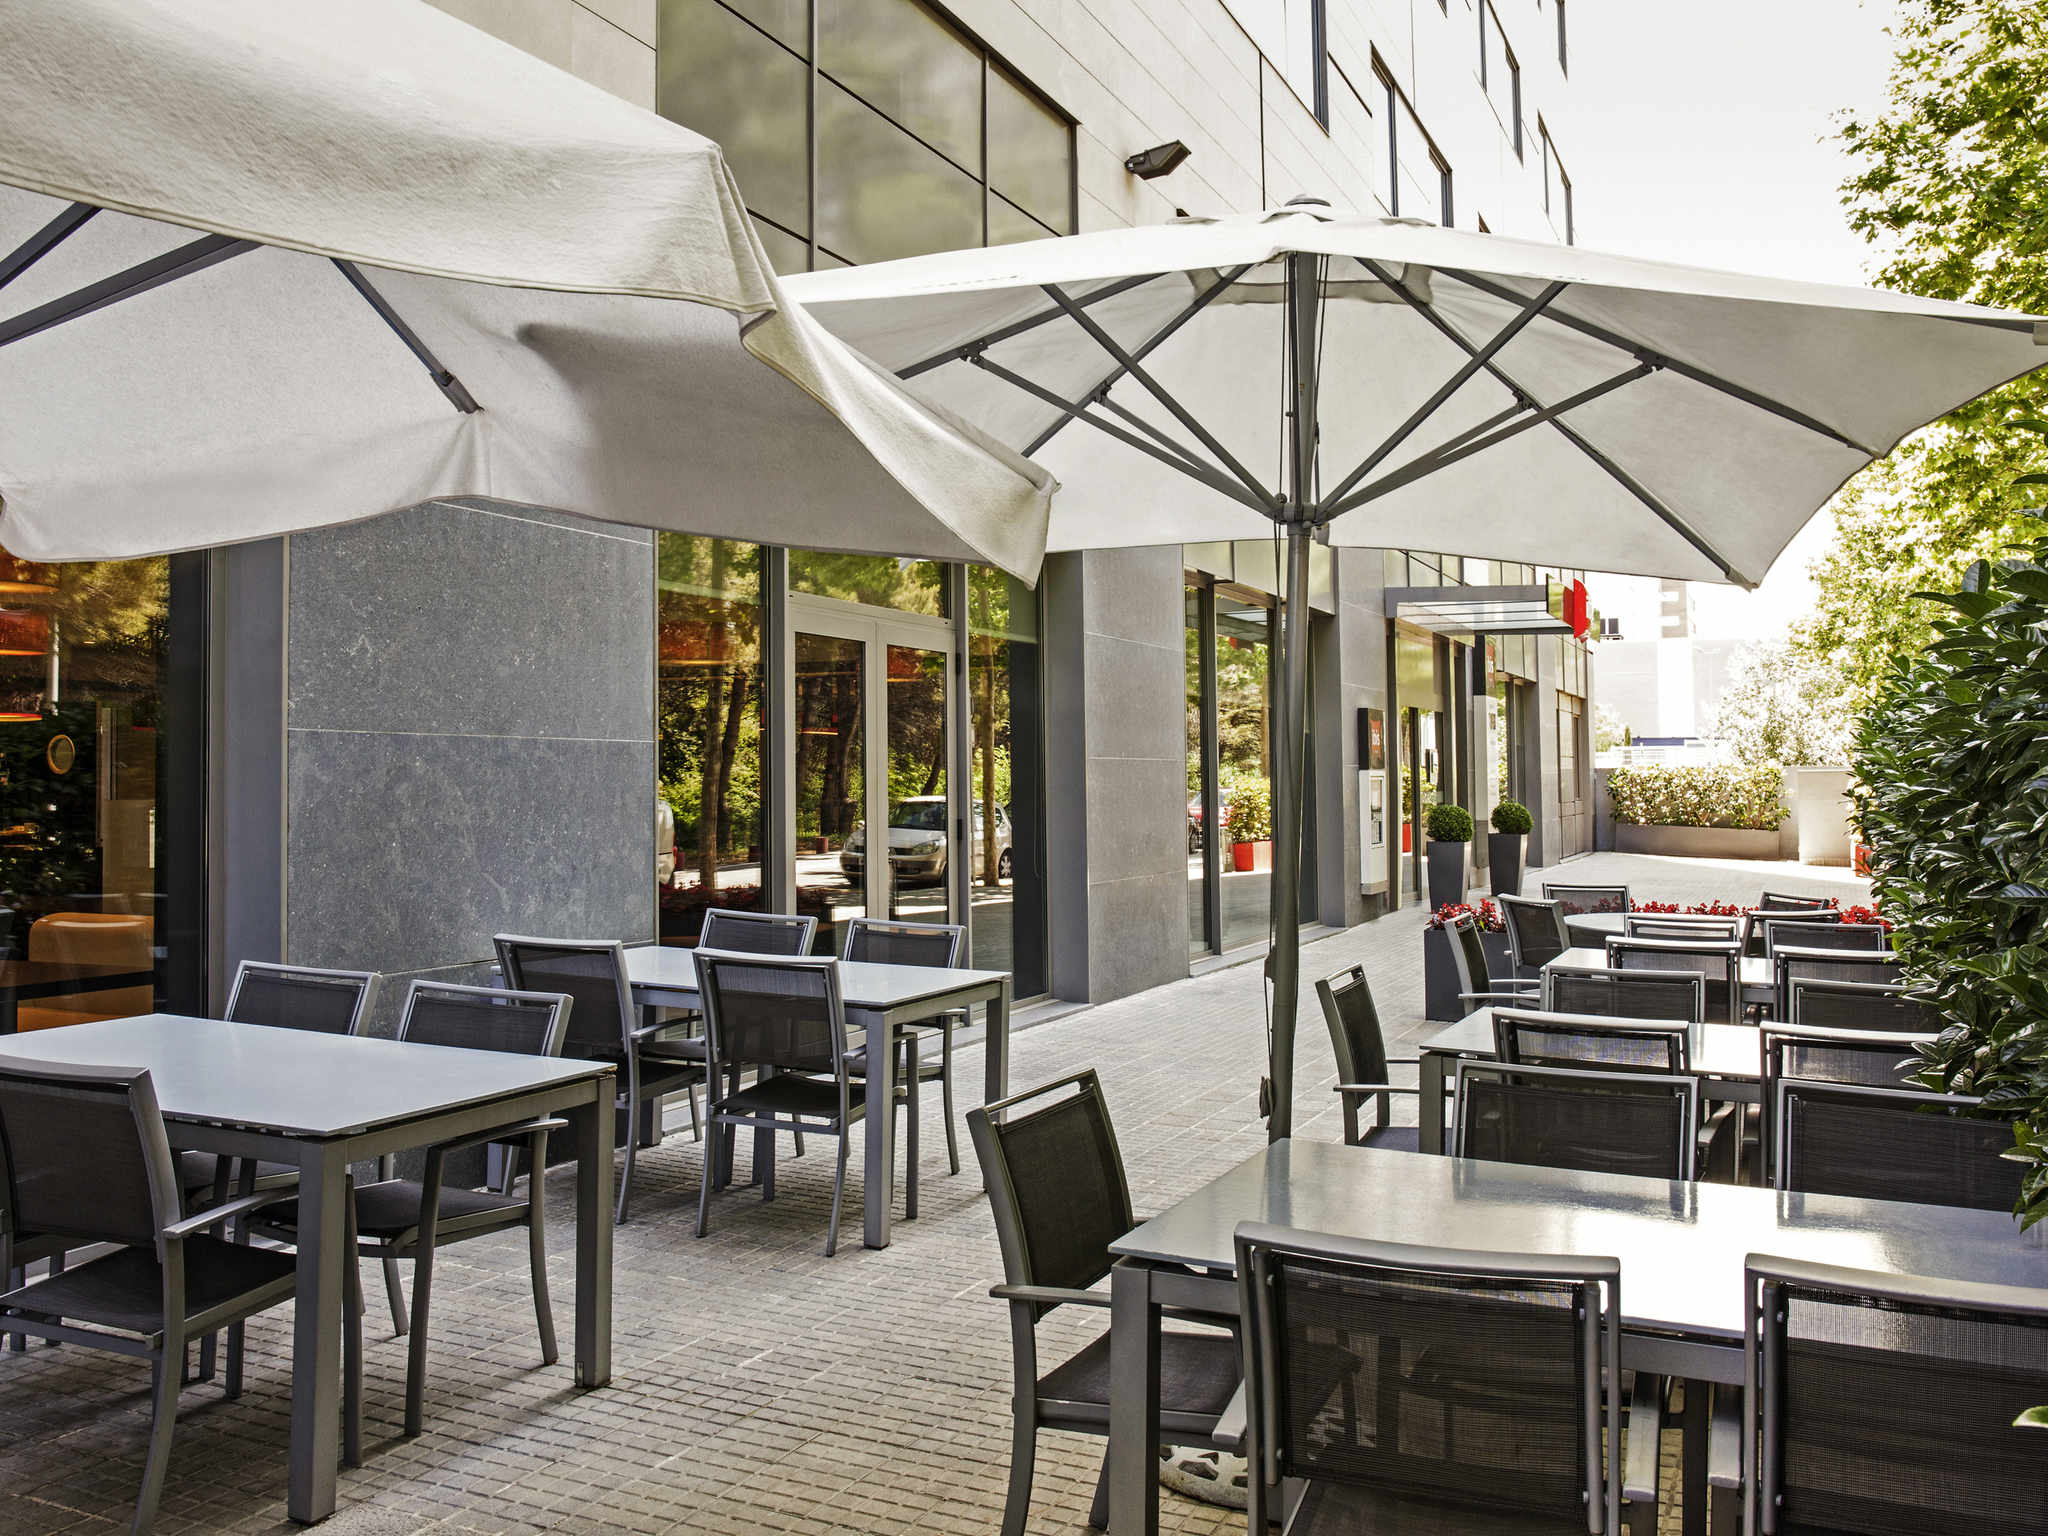 Hotel Silver Shine Hotel In Mollet Book Your Ibis Hotel In Barcelona Mollet